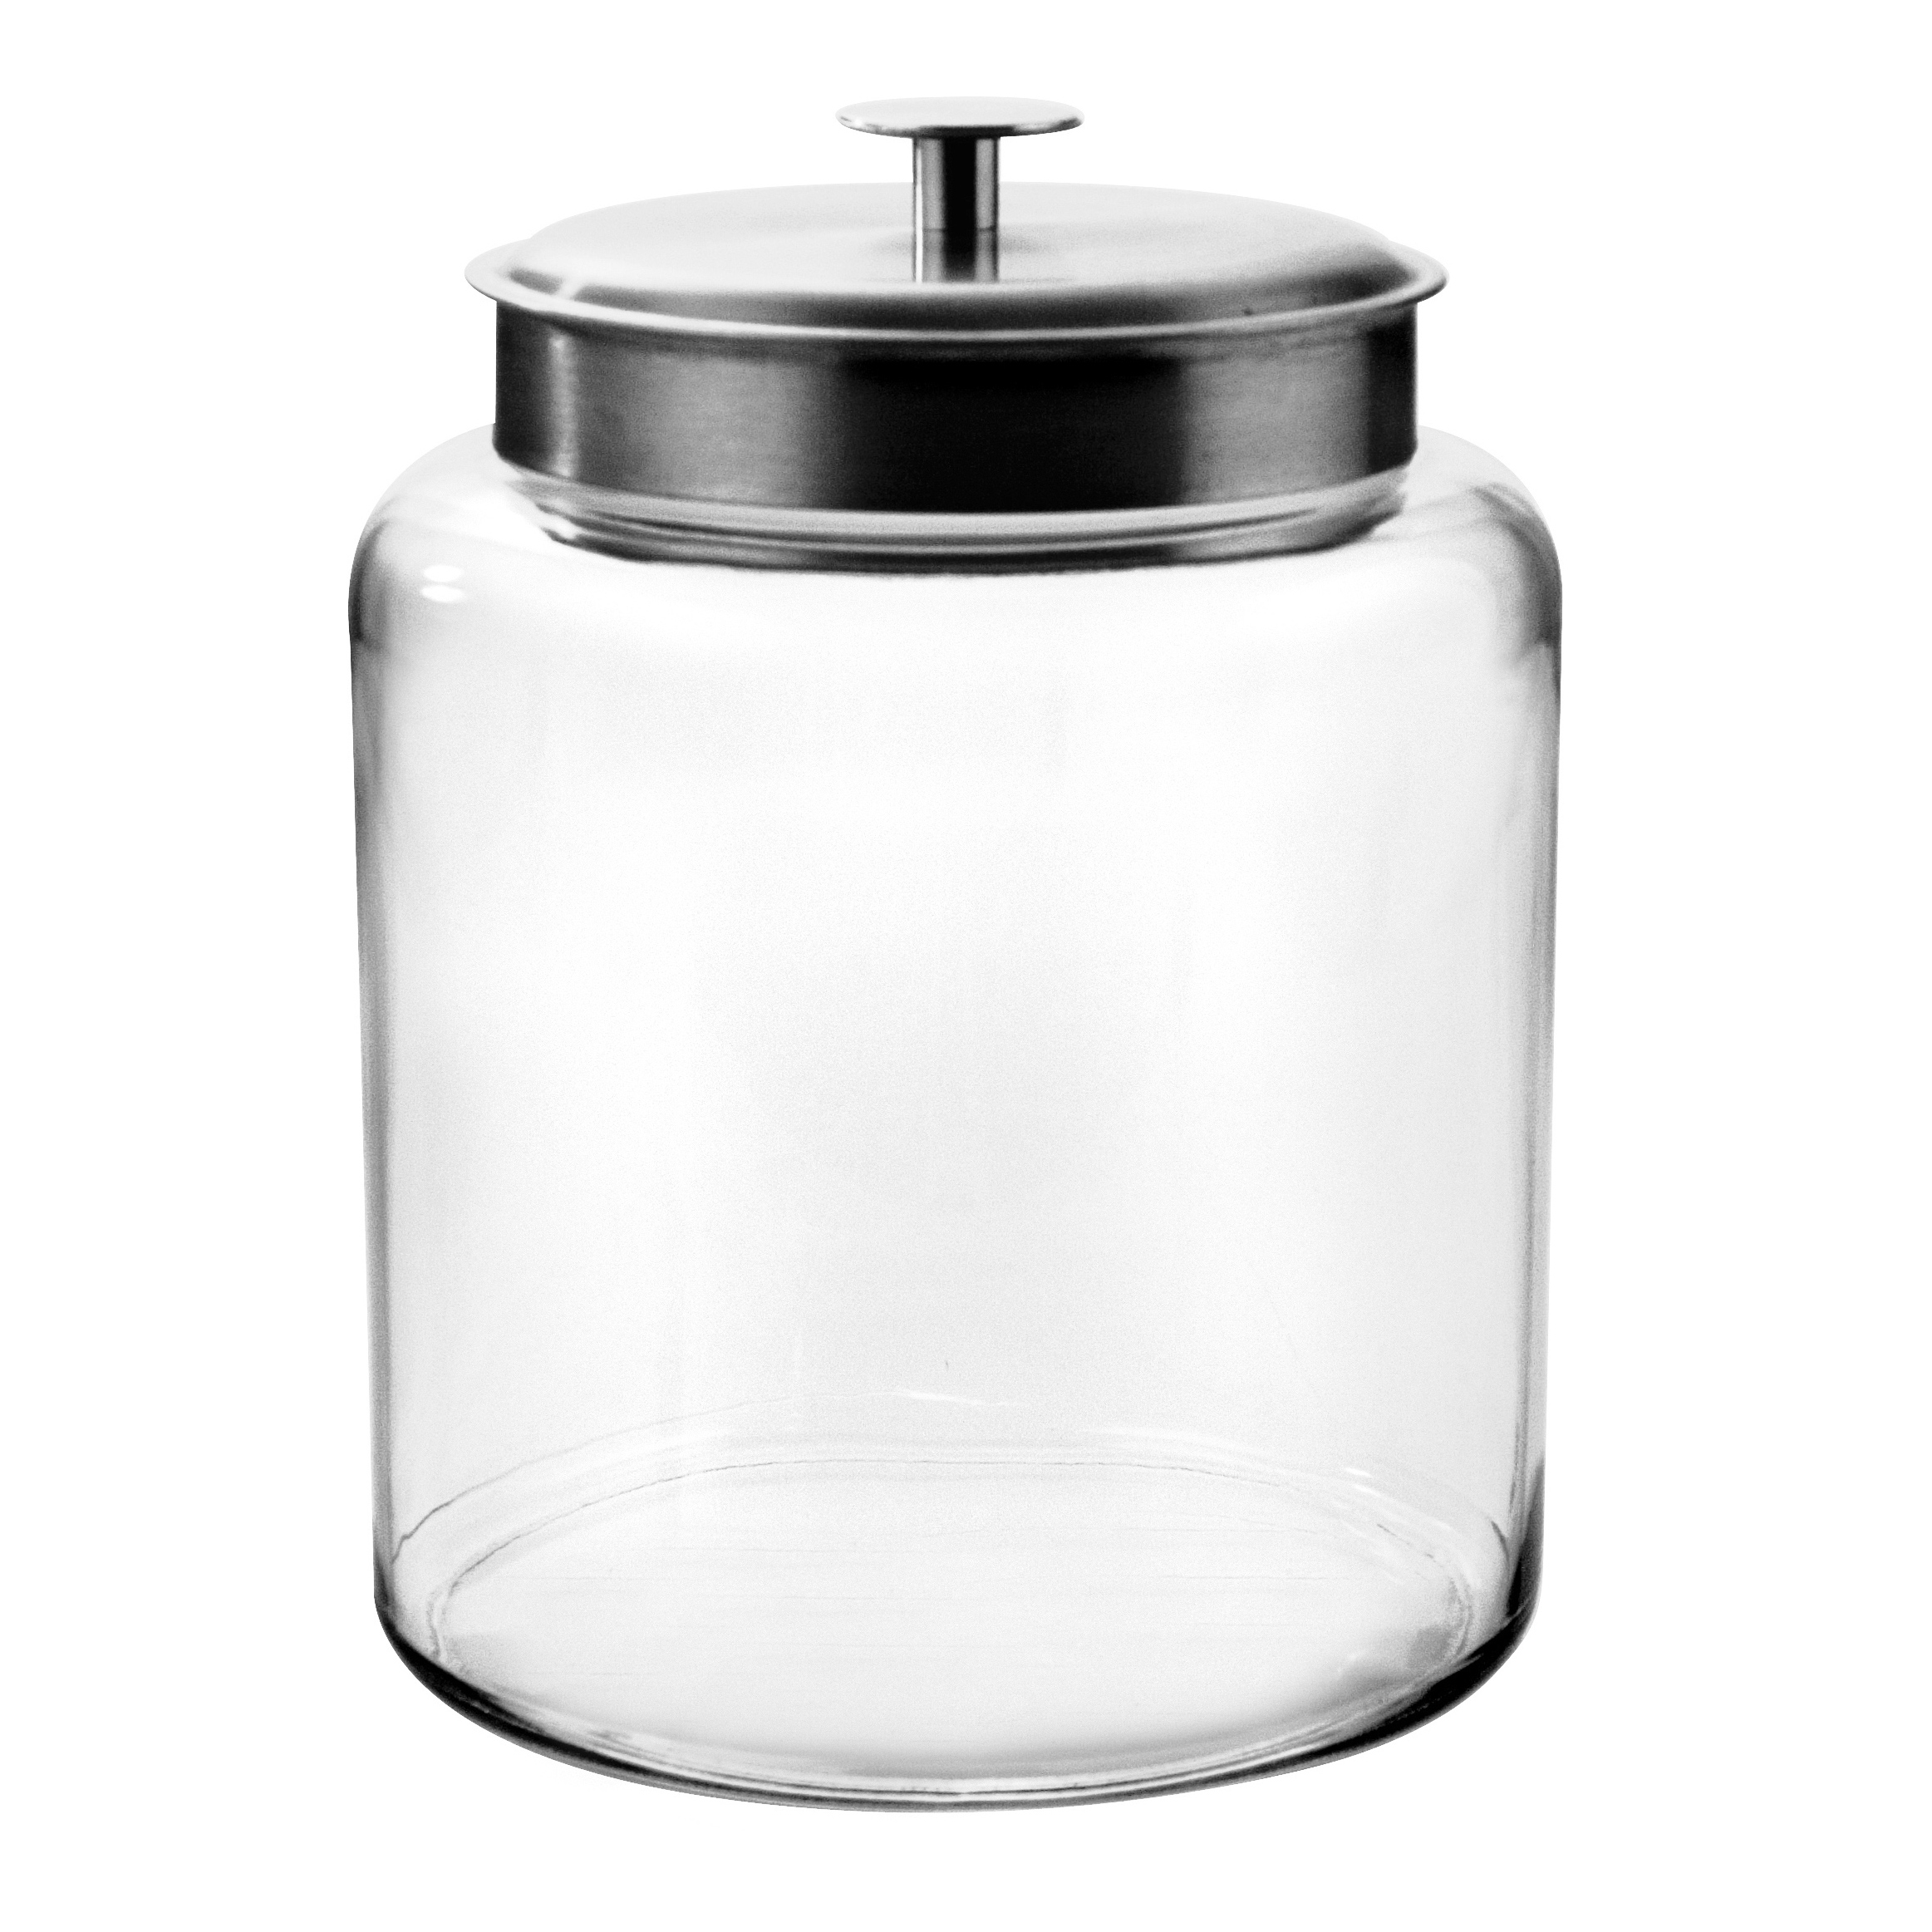 Anchor Hocking Foodservice 91523AHG17 storage jar / ingredient canister, glass